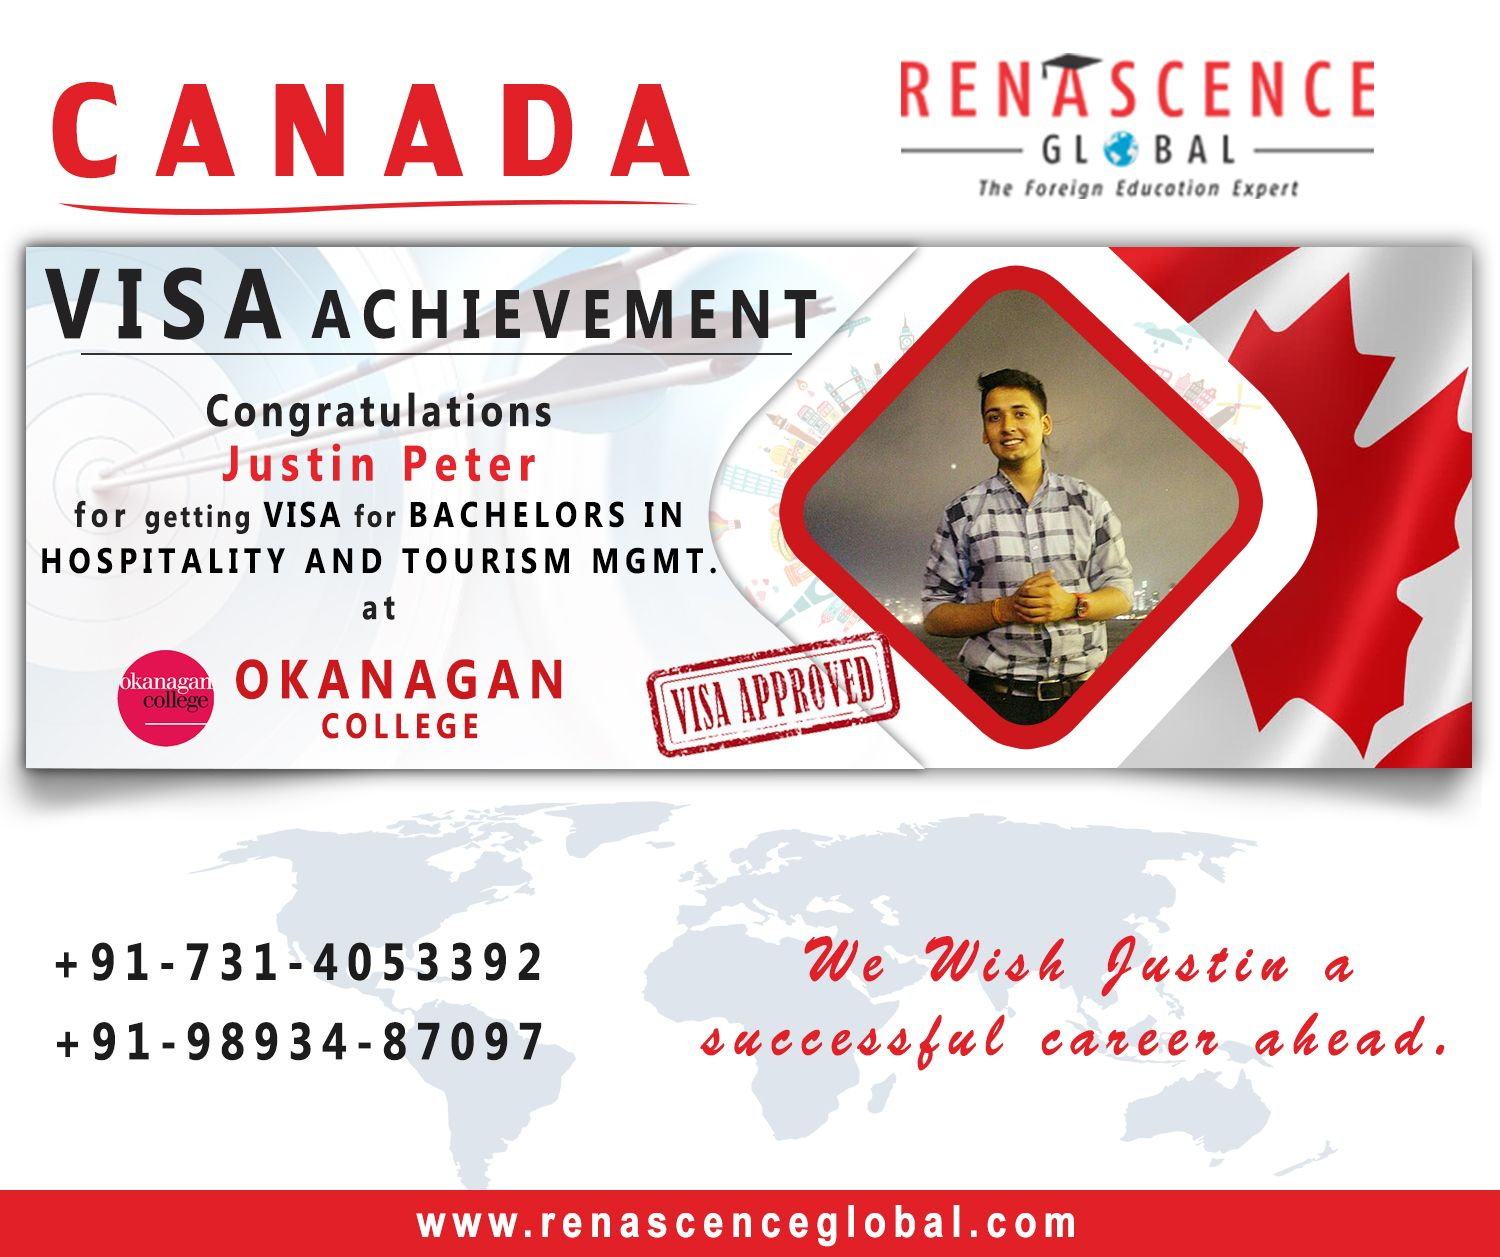 Congratulations Justin Peter For Getting Visa For Bachelors In Hospitality And Tourism M Hospitality And Tourism Management Tourism Management Achievement